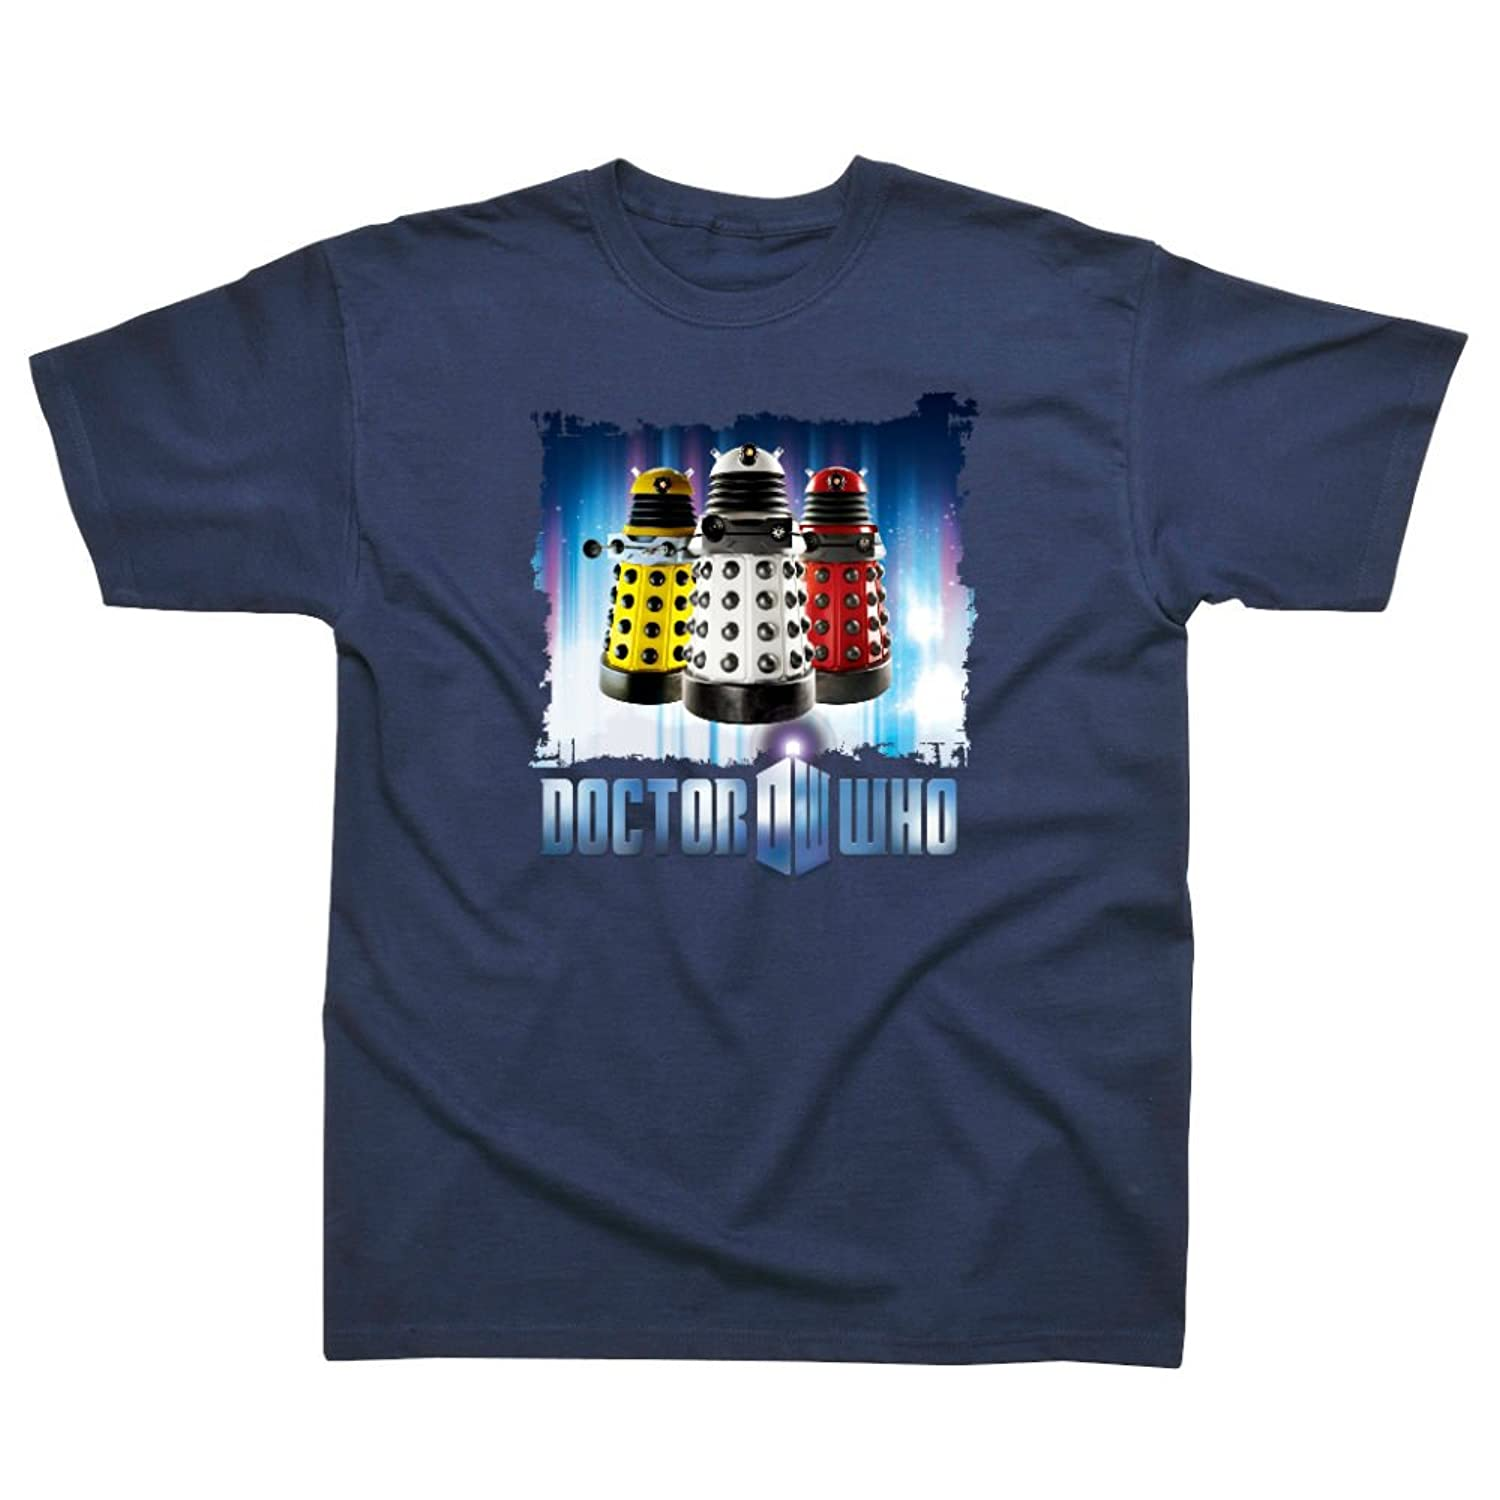 Dr Who Licensed Printed T shirt Navy - Daleks